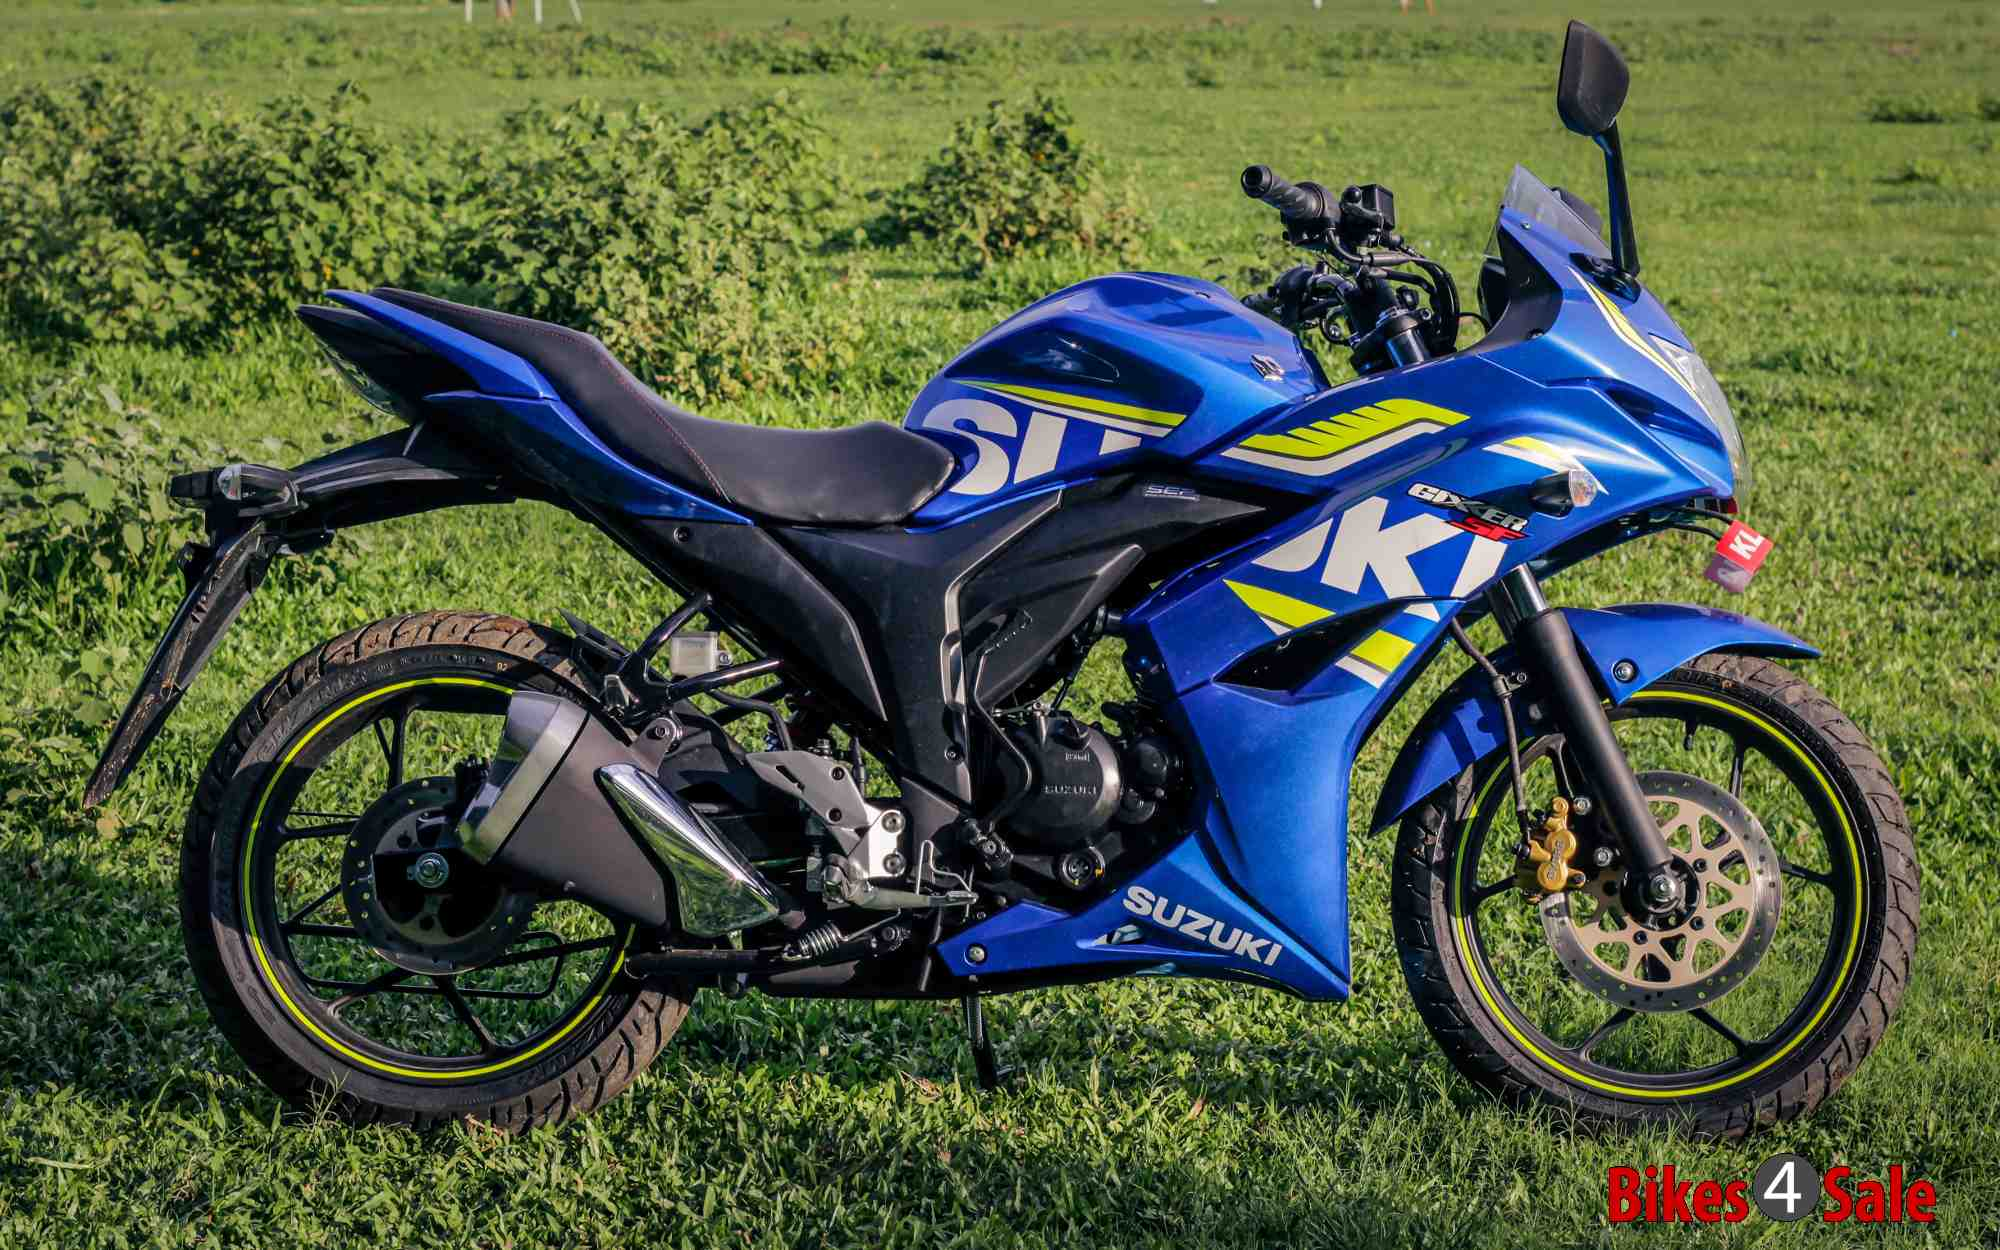 Suzuki Gixxer Sf Side View